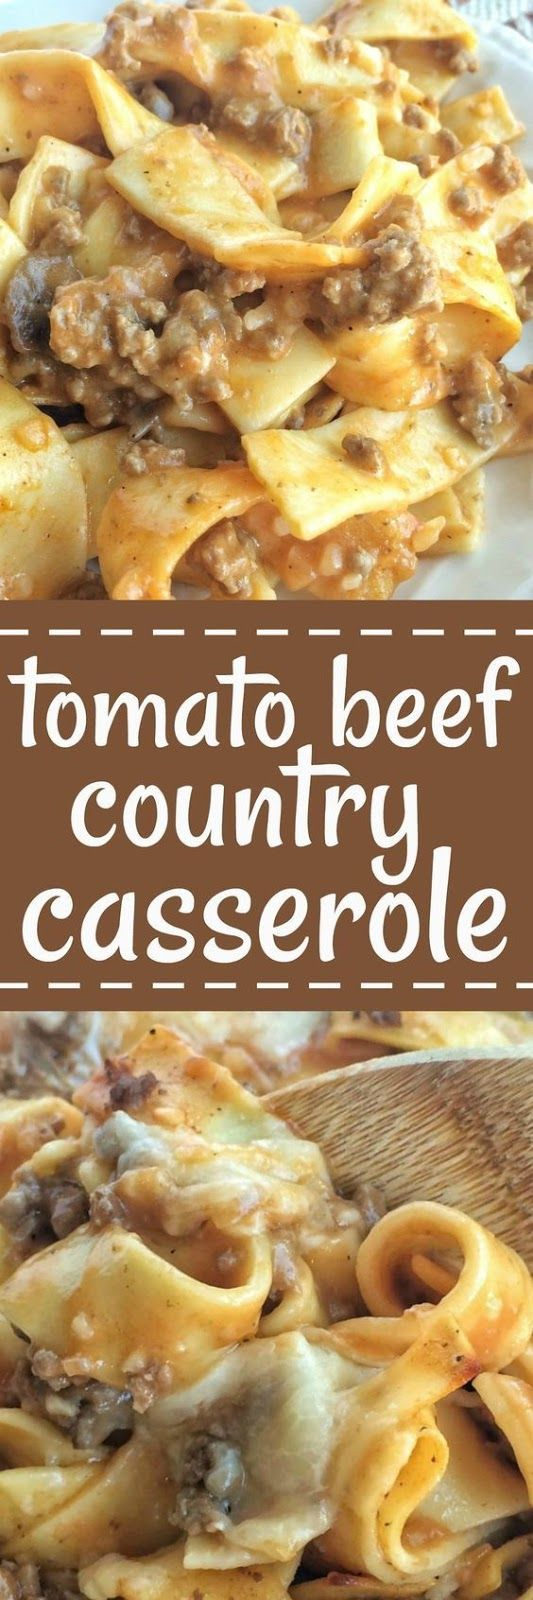 Great Ground Beef Country Casserole Recipe In 2020 Ground Beef Ground Beef Recipes Favorite Comfort Food